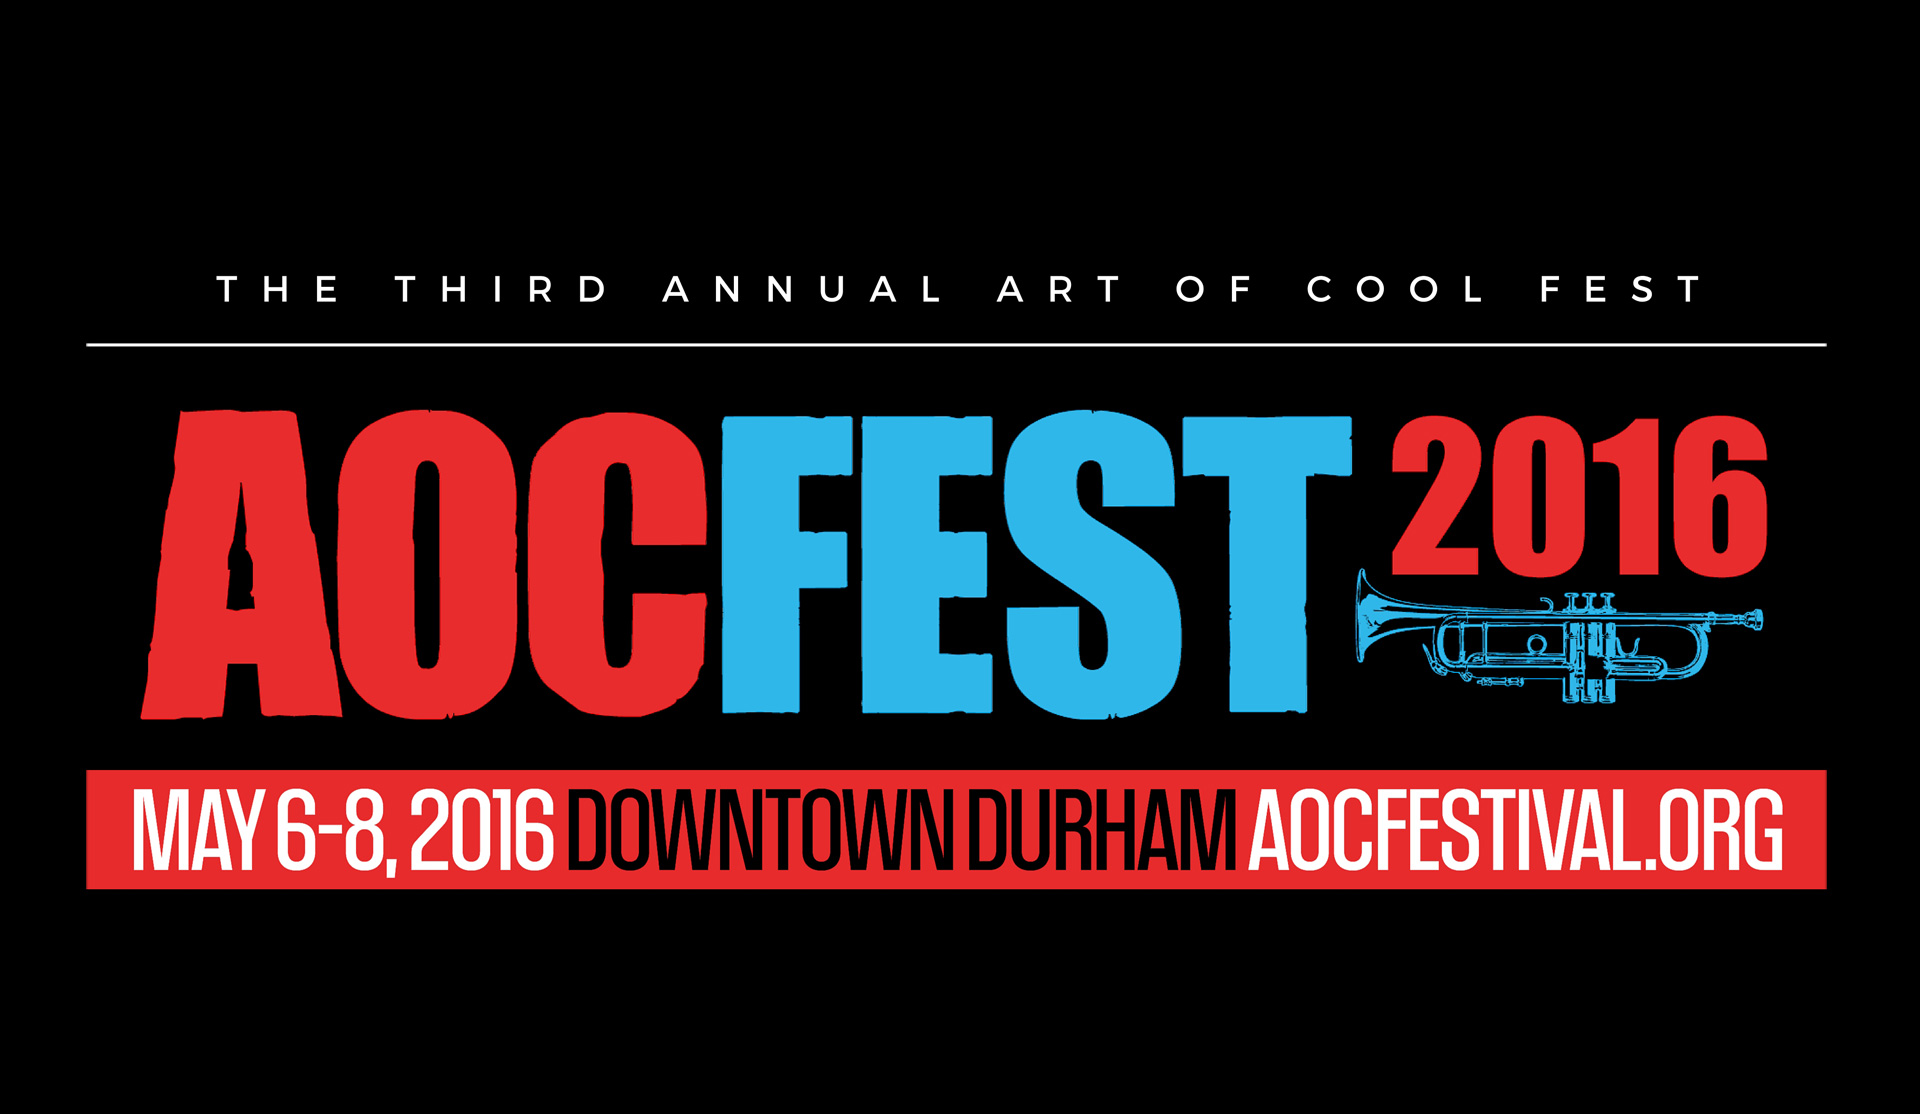 Art Of Cool Fest Durham Nc Musical Must Sees The Couch